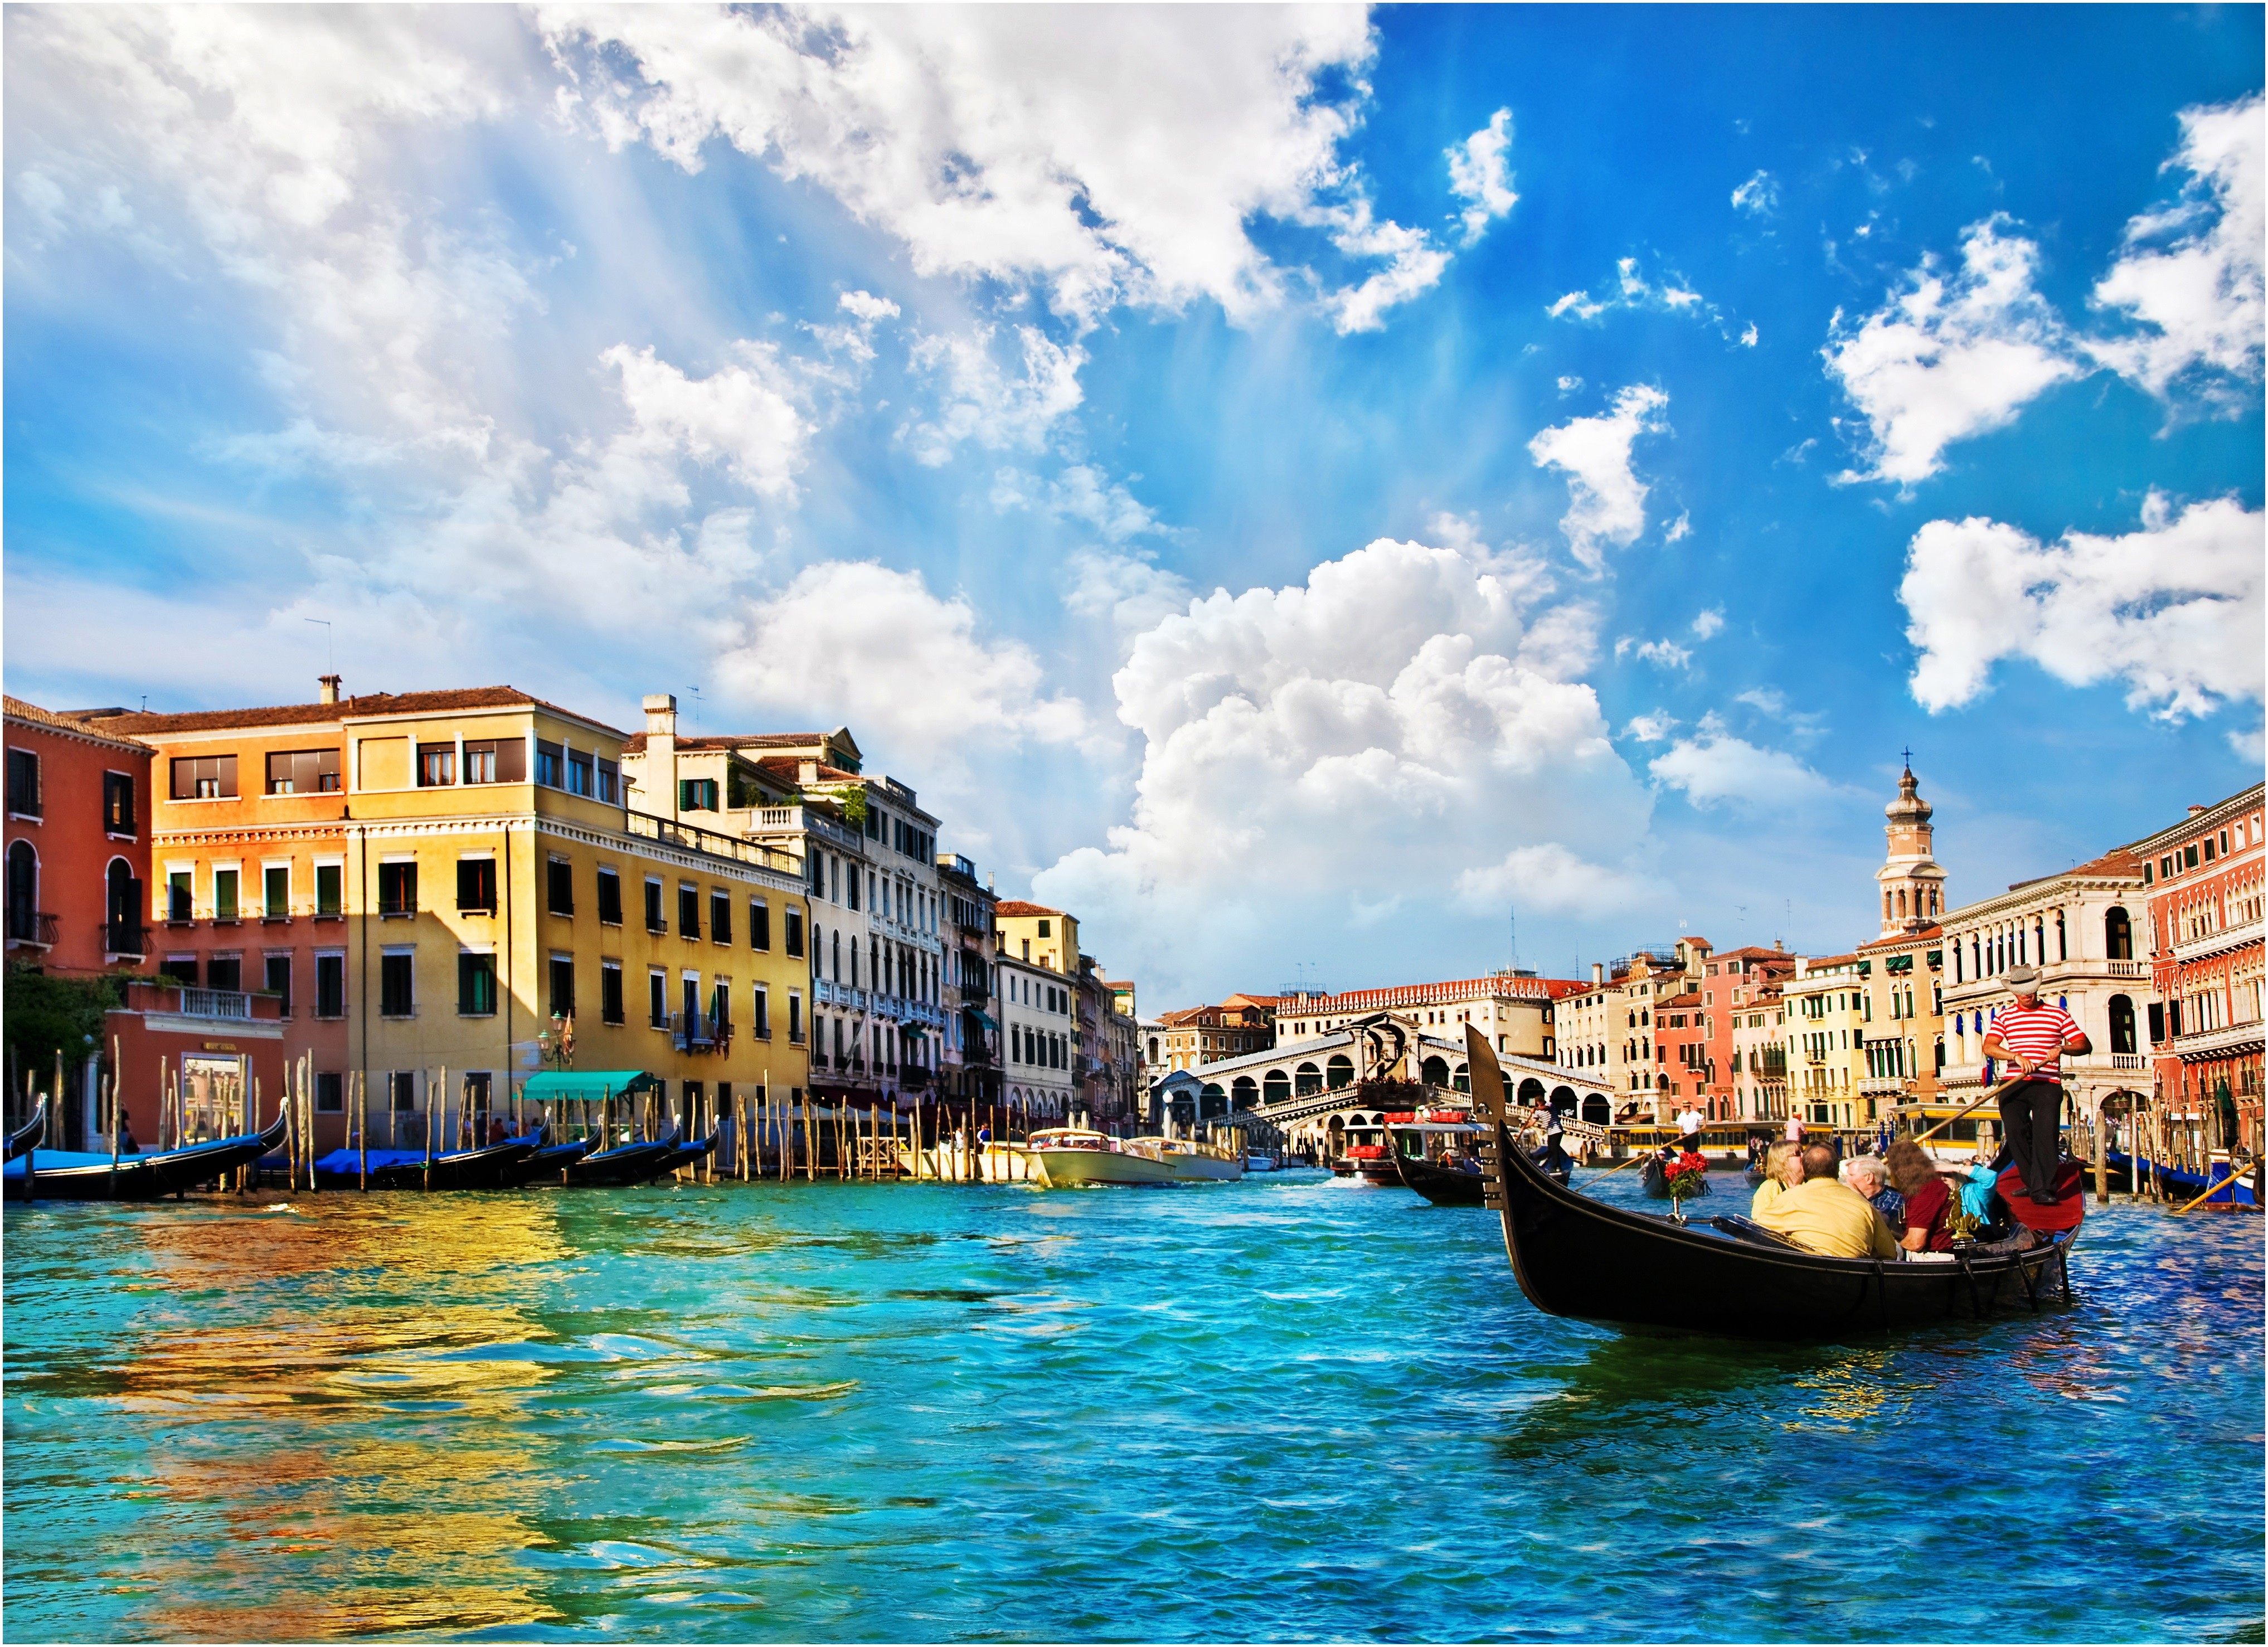 11 Apr The Best Honeymoon Destinations in Italy